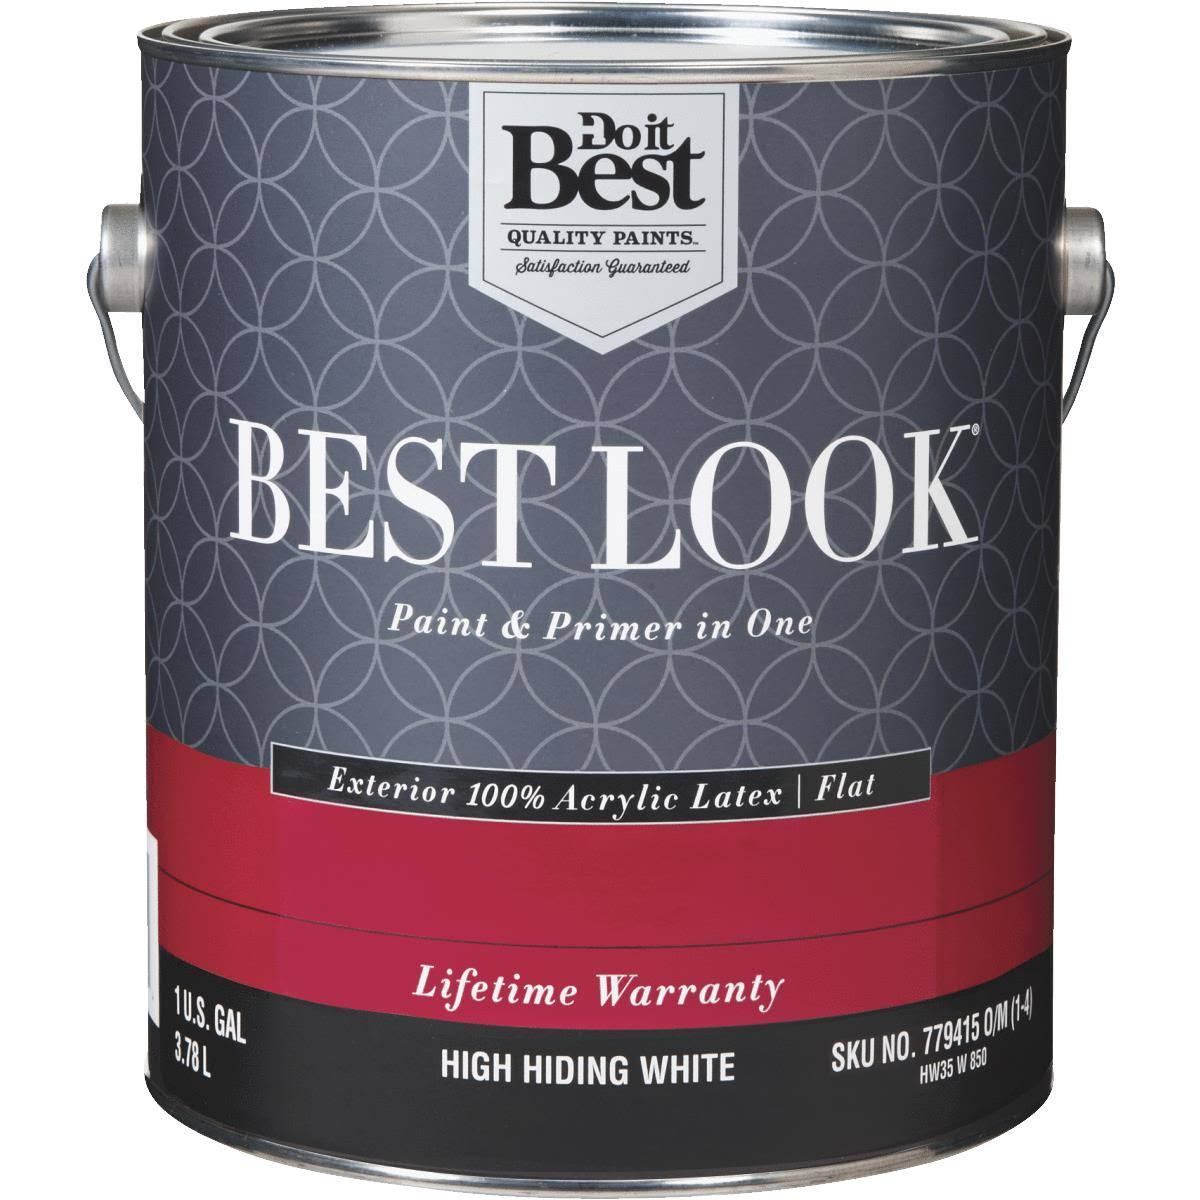 - HW35W0850-16 Best Look 100% Acrylic Latex Paint & Primer in One Flat Exterior House Paint